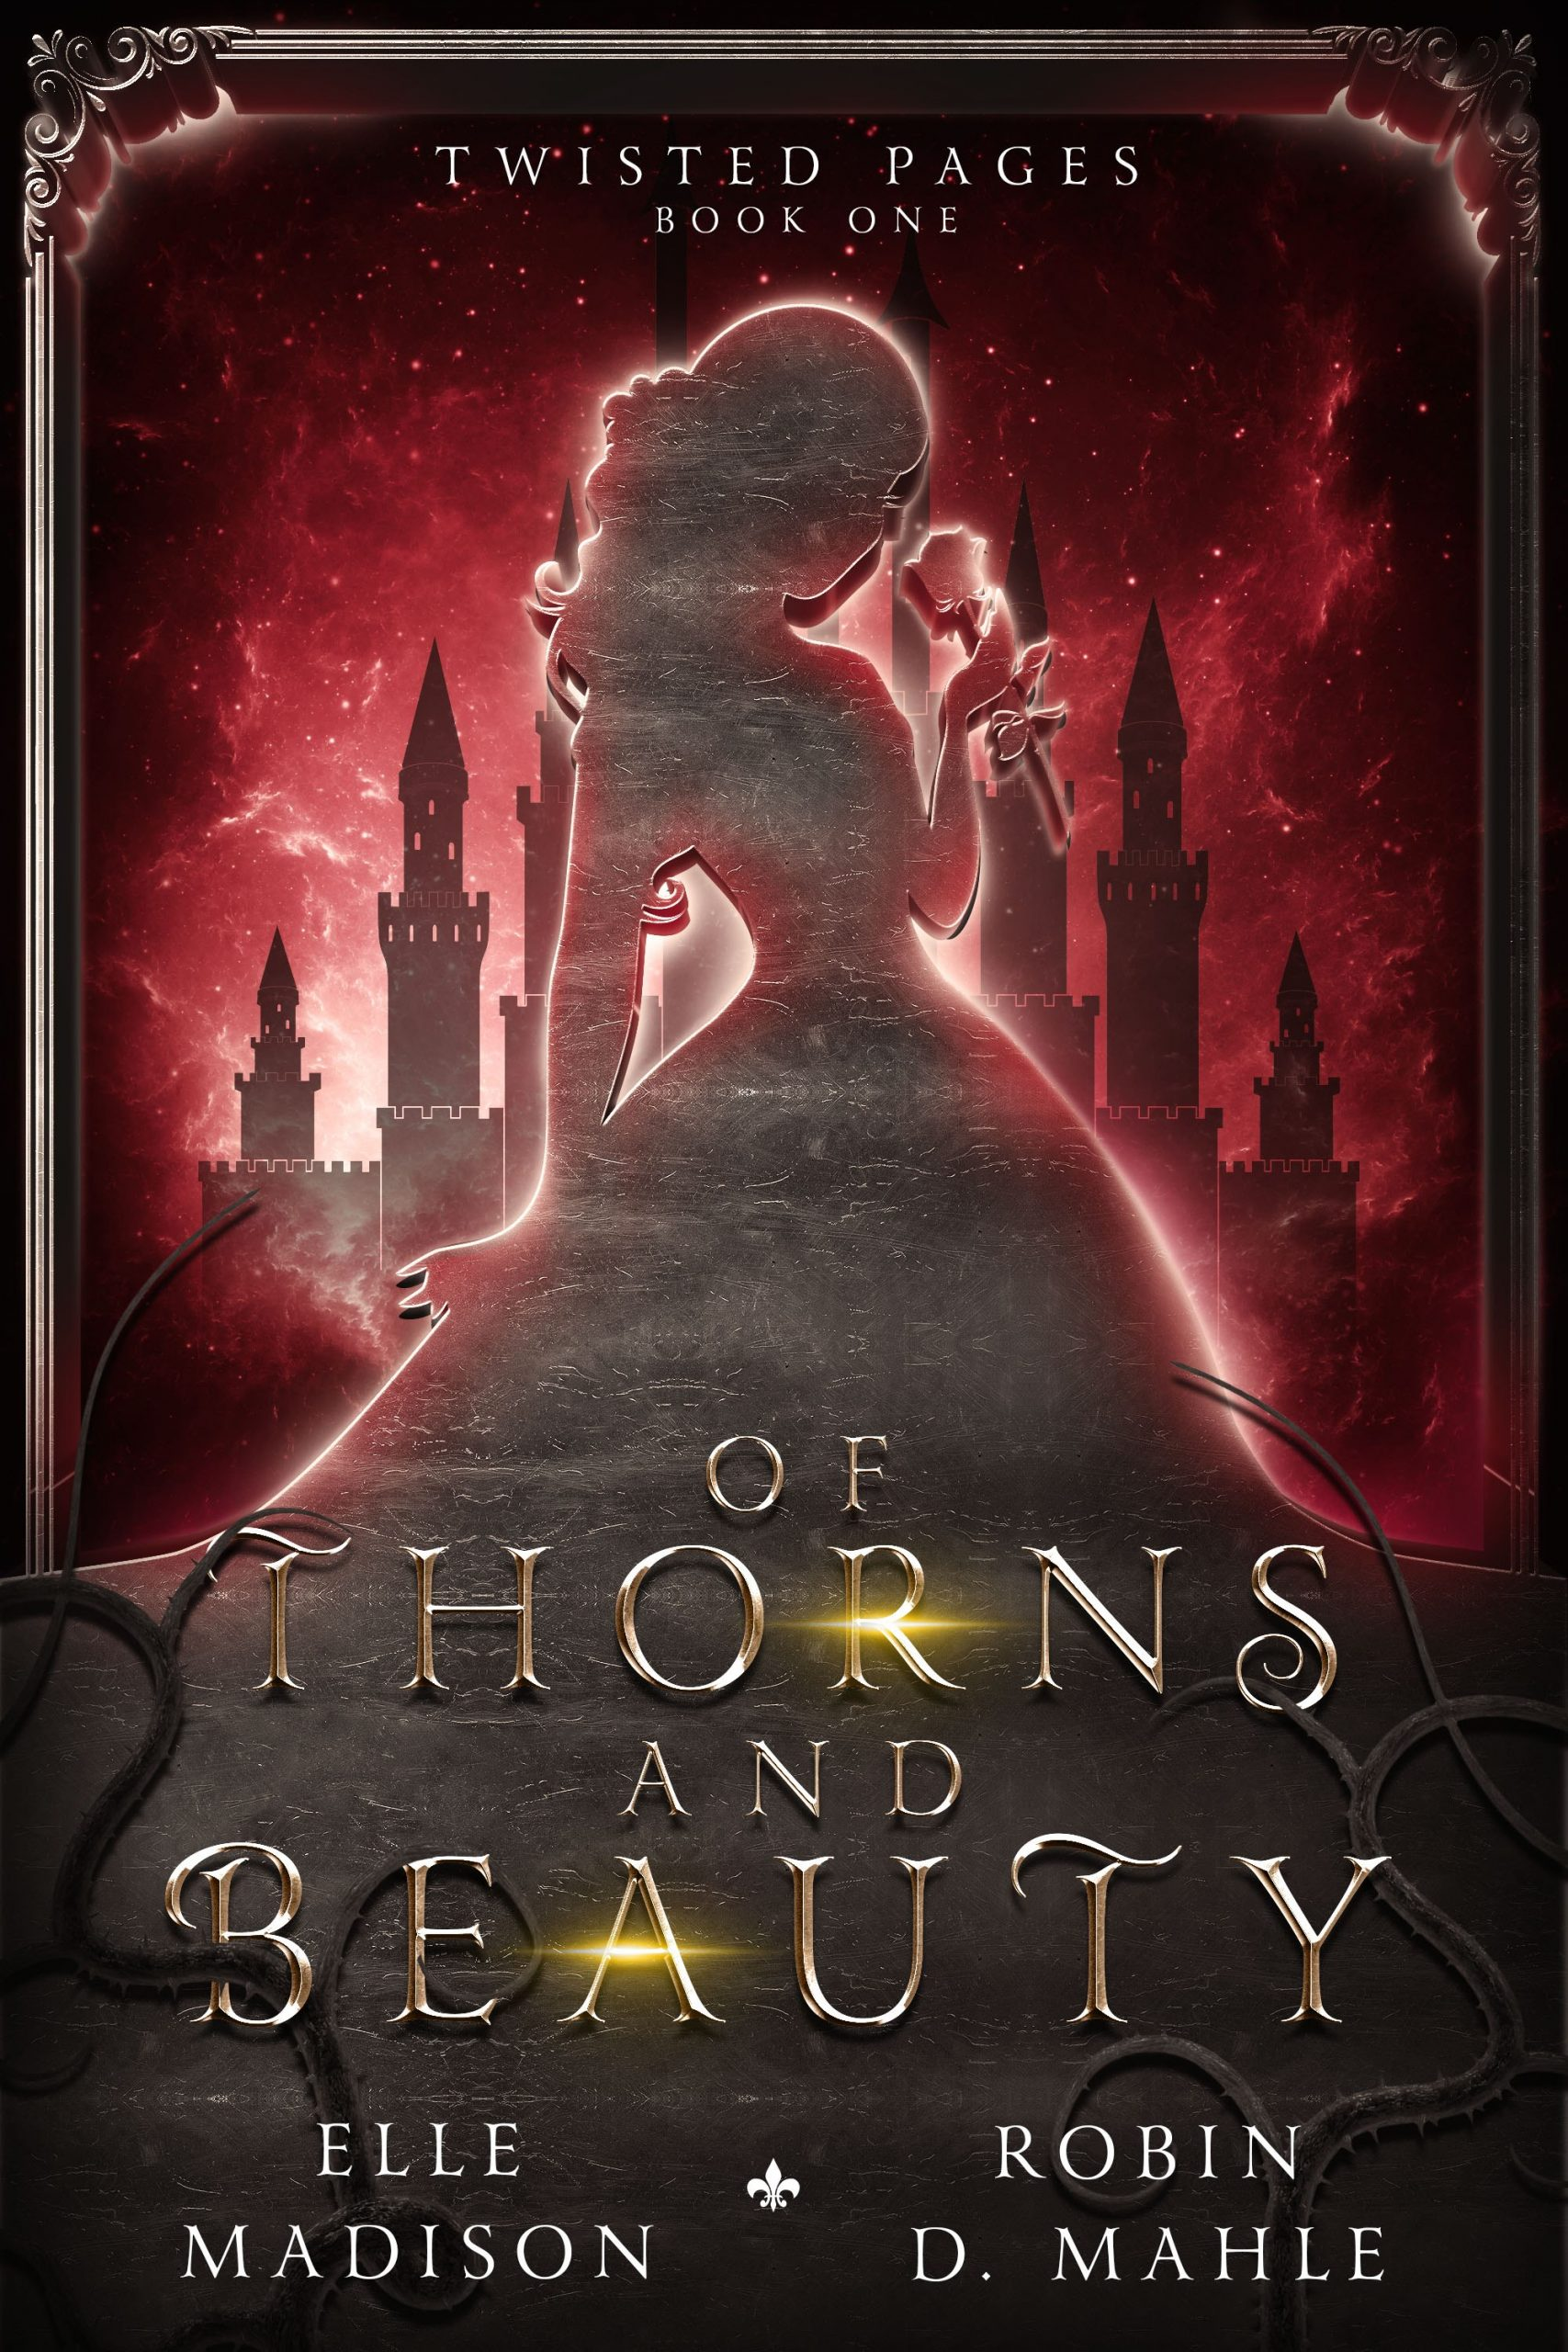 Of Thorns and Beauty by Elle Madison, Robin D. Mahle